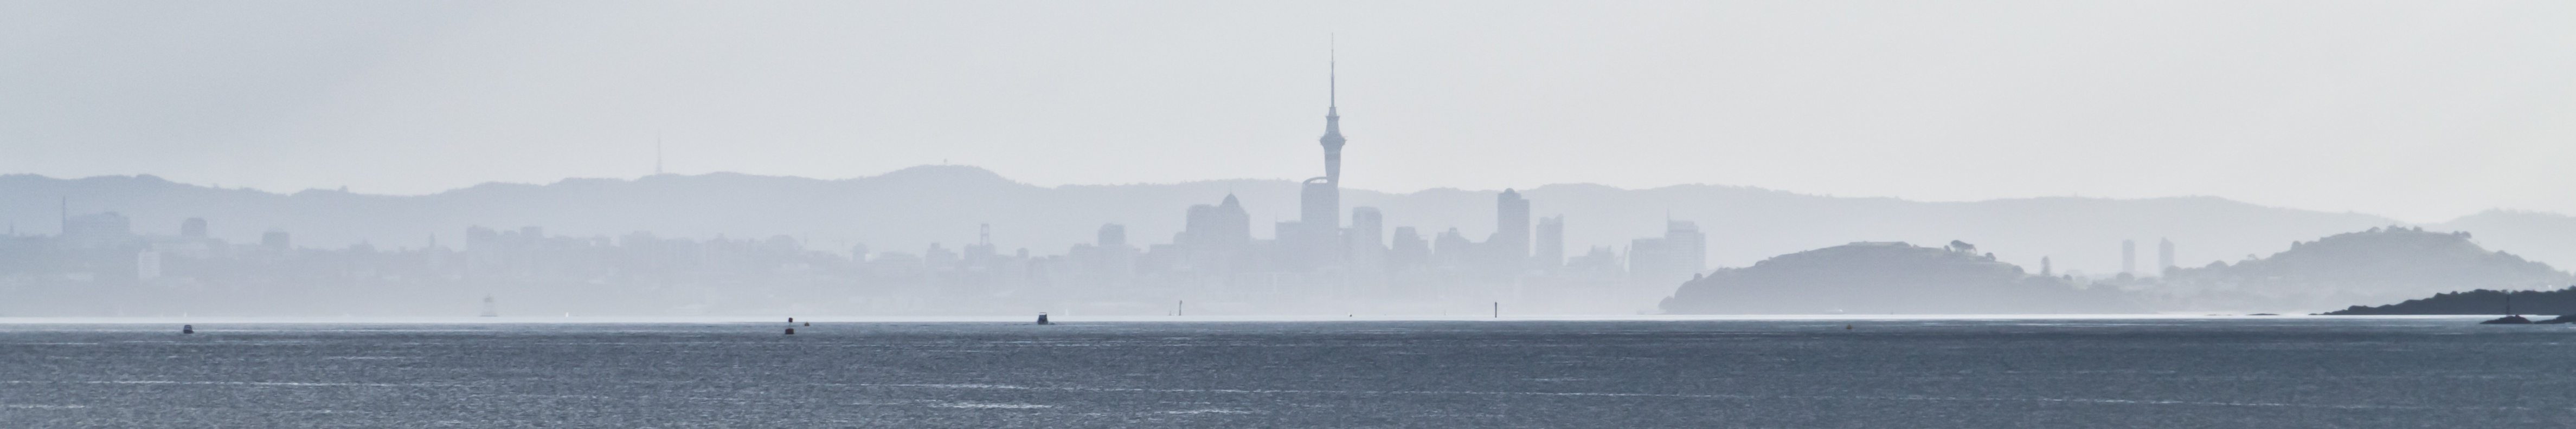 View of Auckland City by imladris517